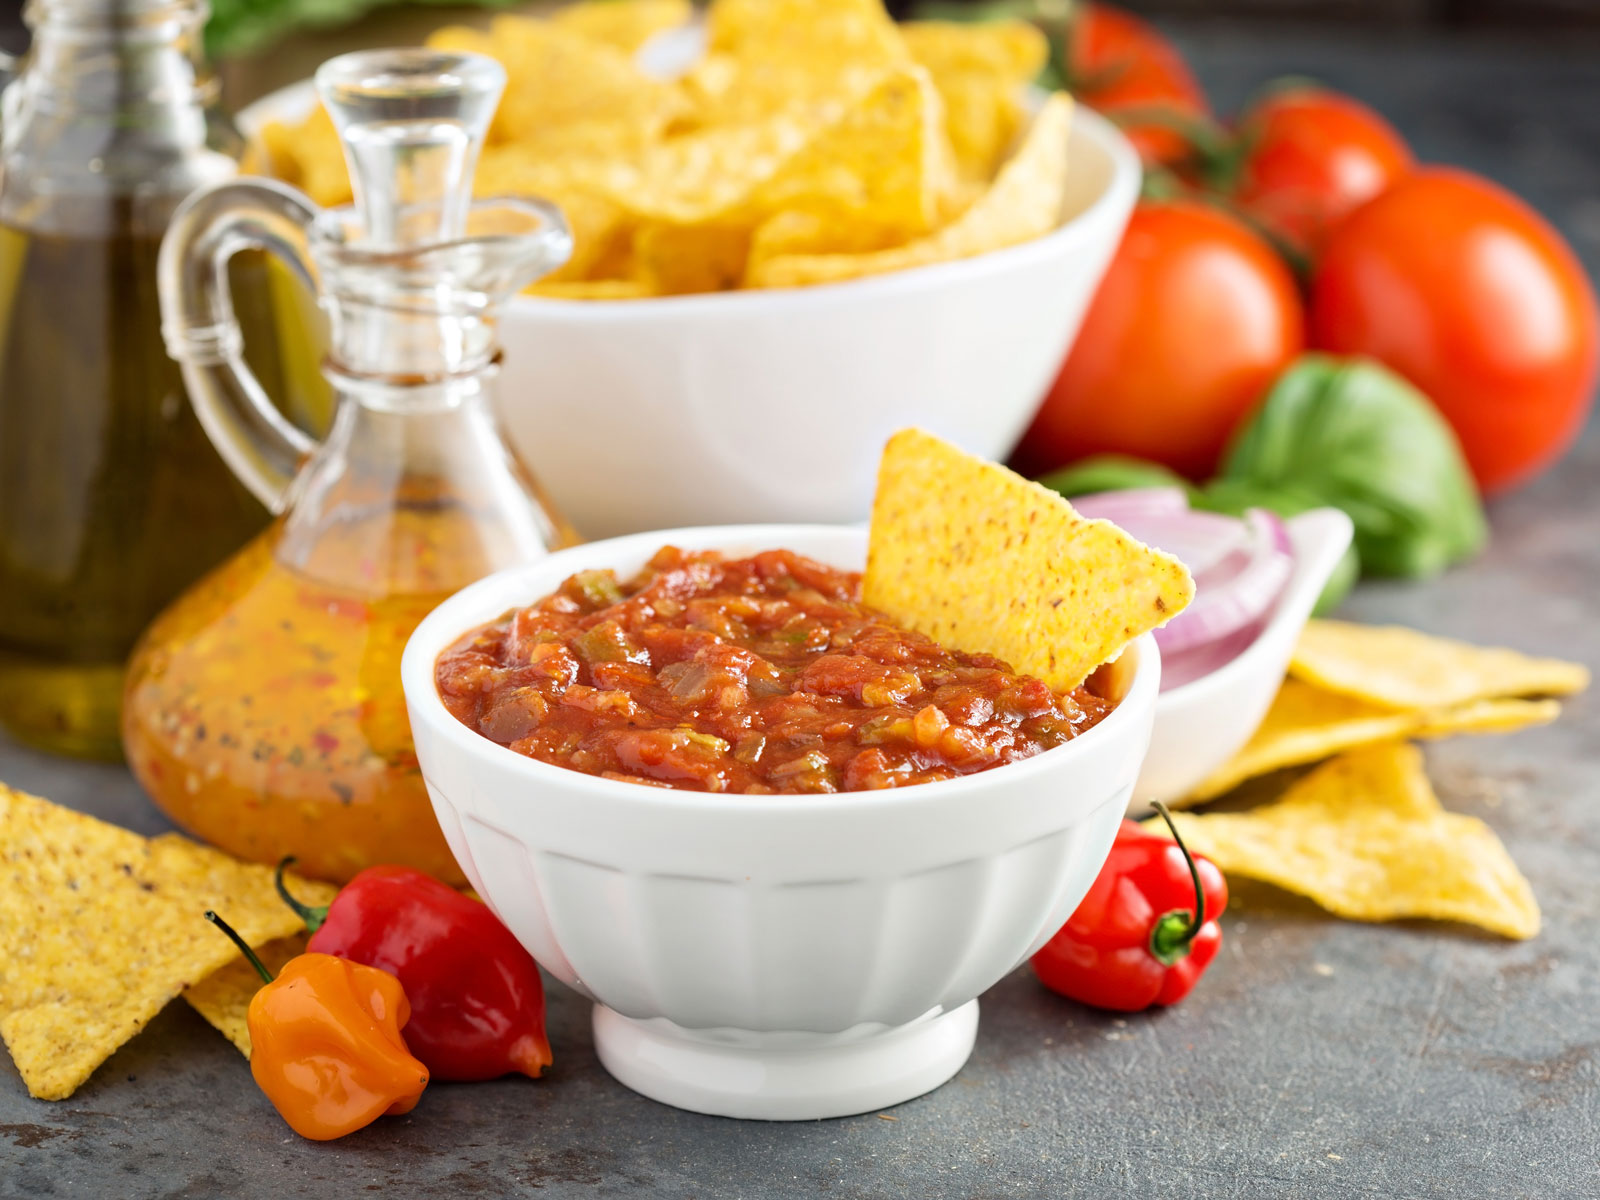 This Chips and Salsa Subscription Service Wants Send You Your Favorite Snack Every Month